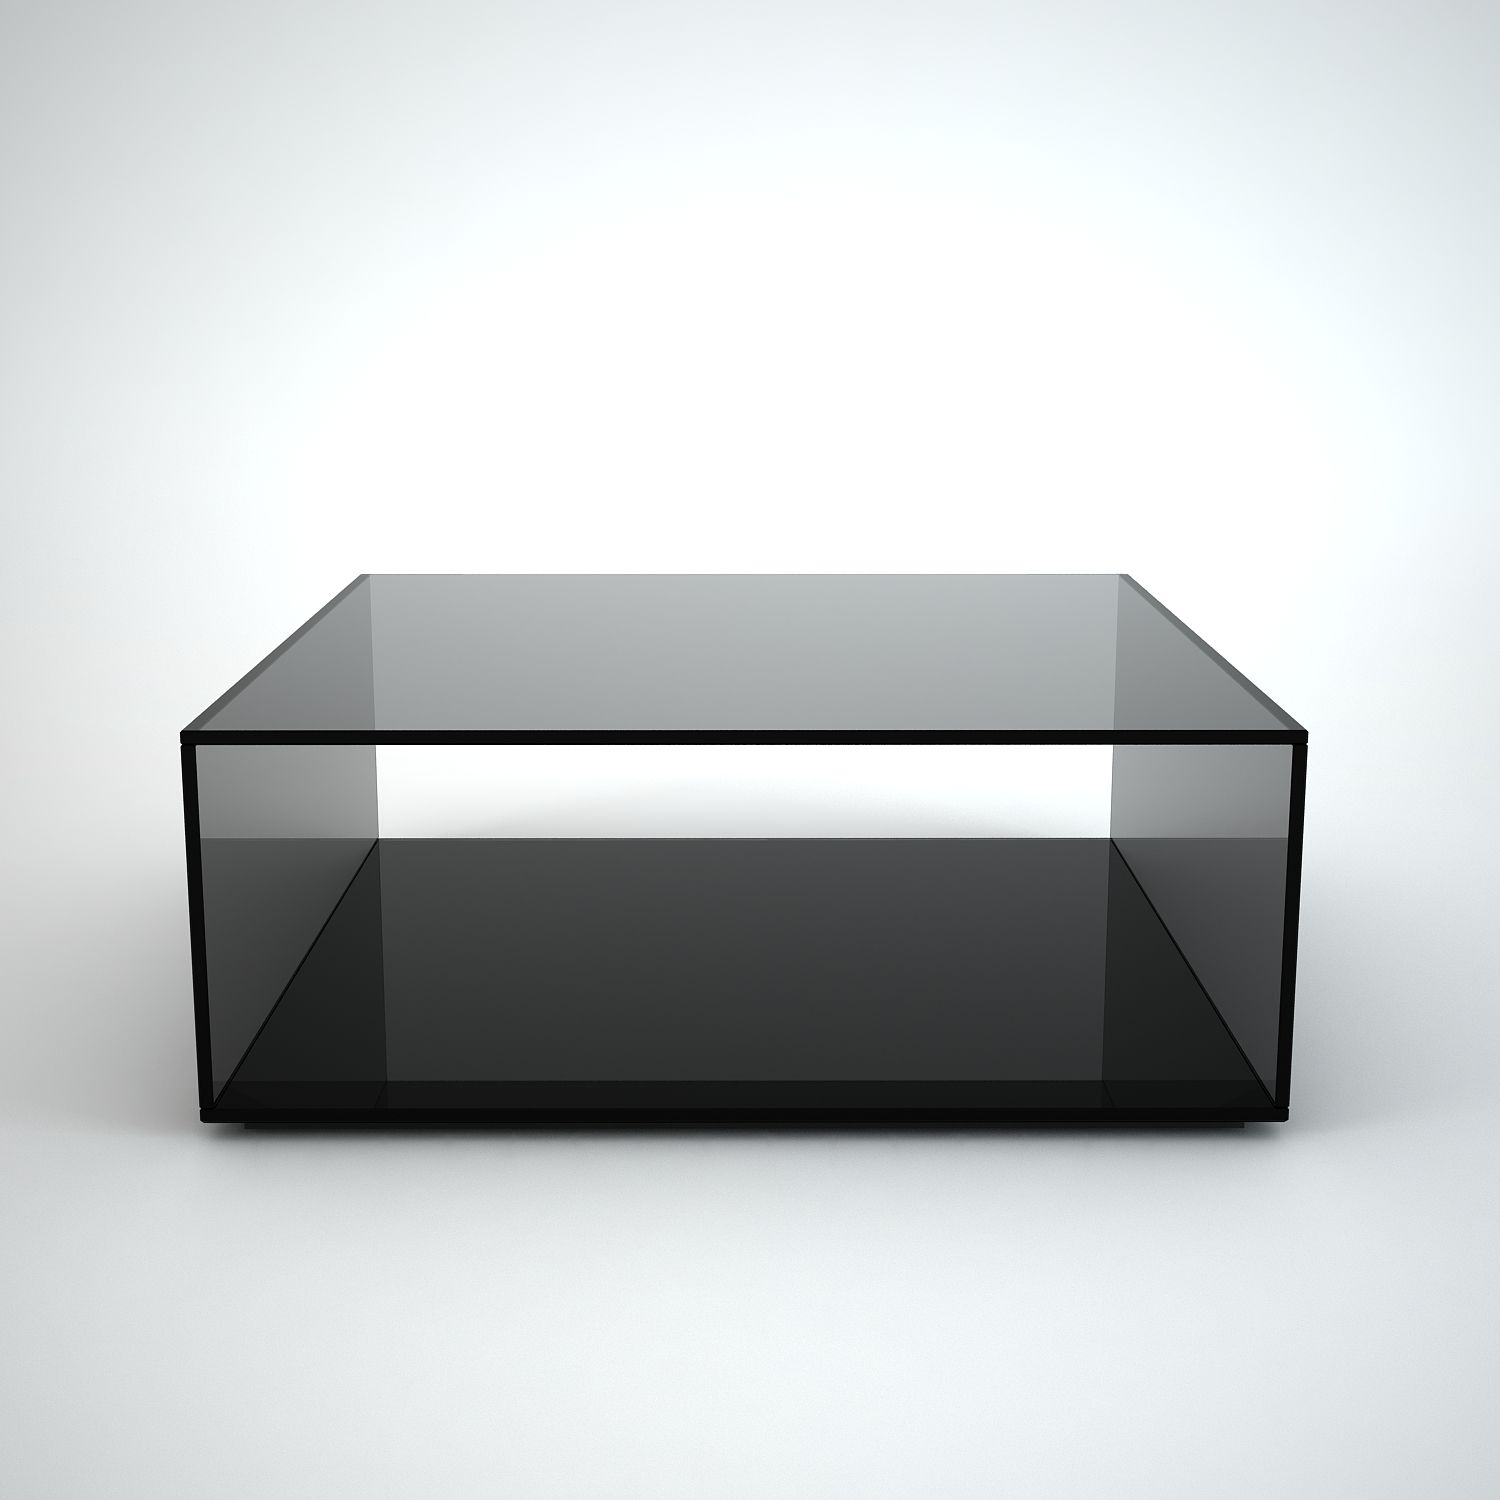 Quebec Square Grey Tint Gl Coffee Table By Klarity